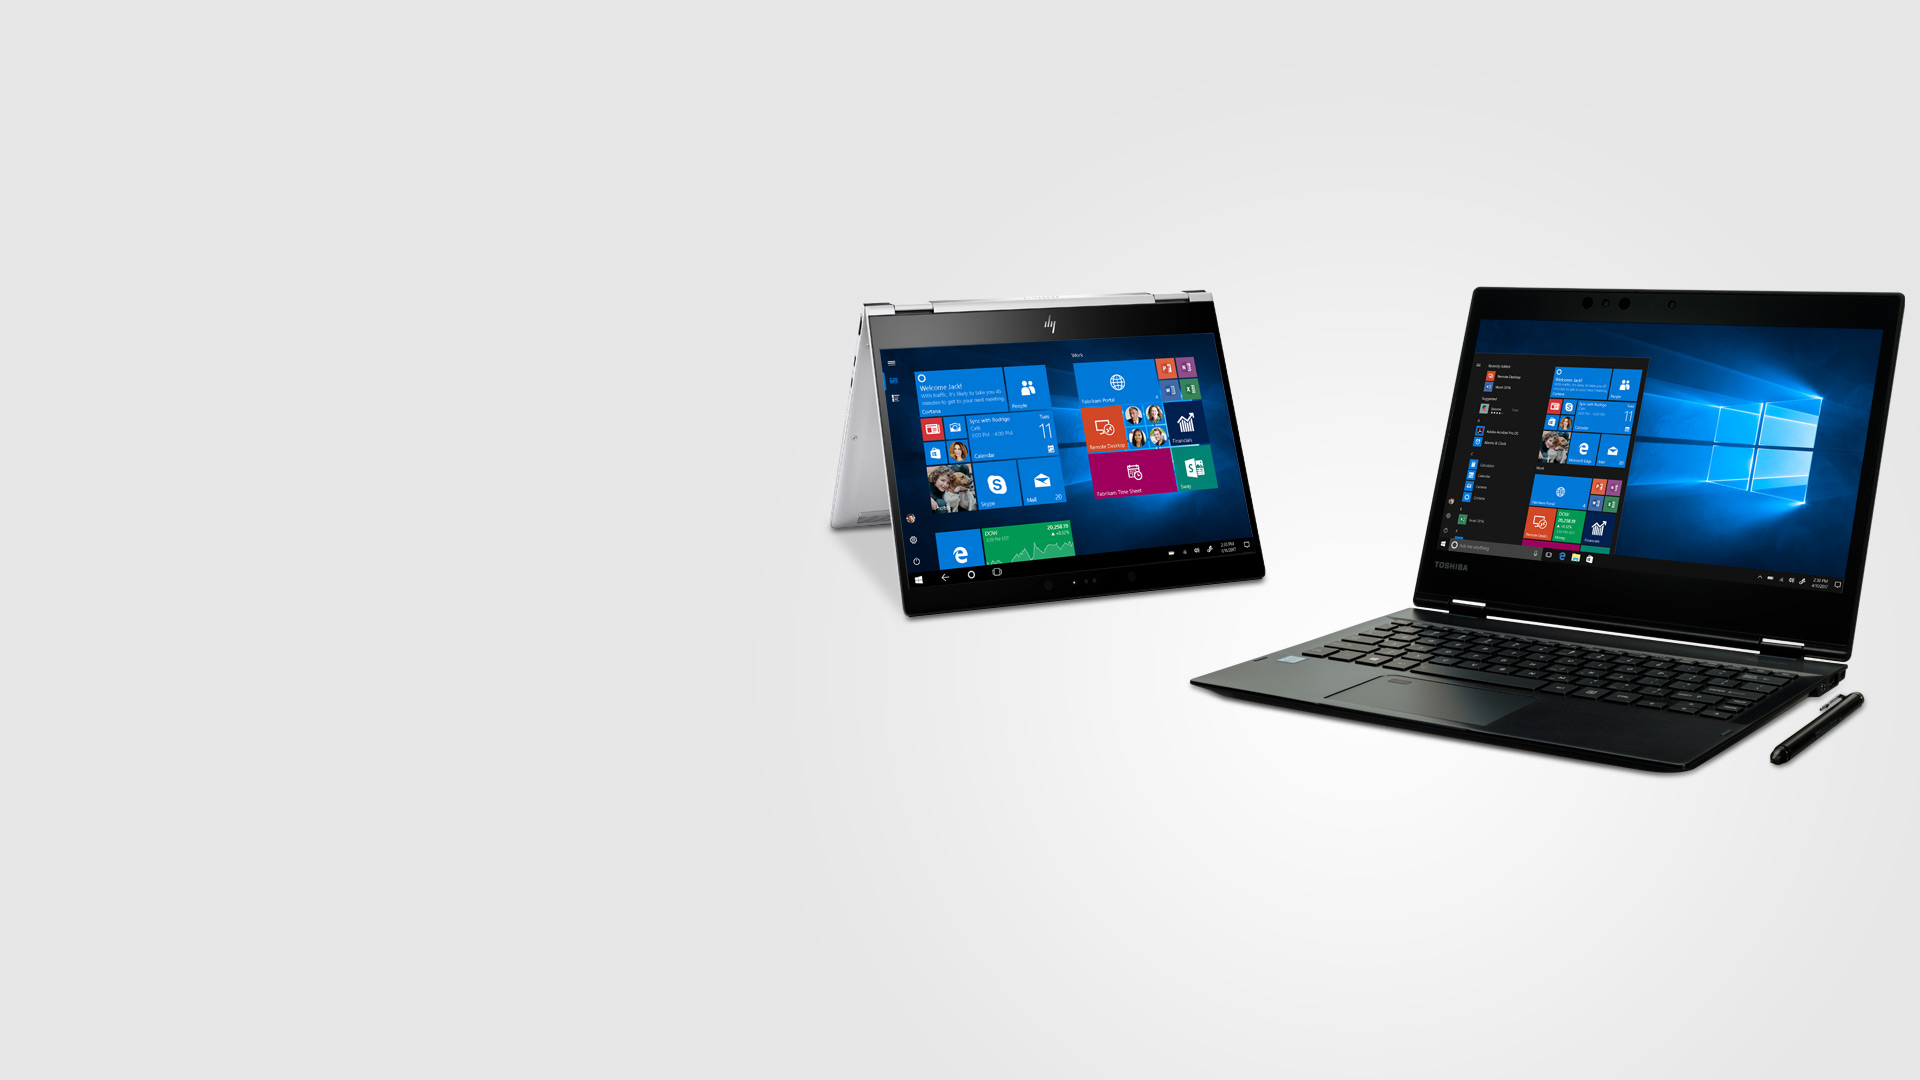 2 Windows 10 Pro laptops in different use cases